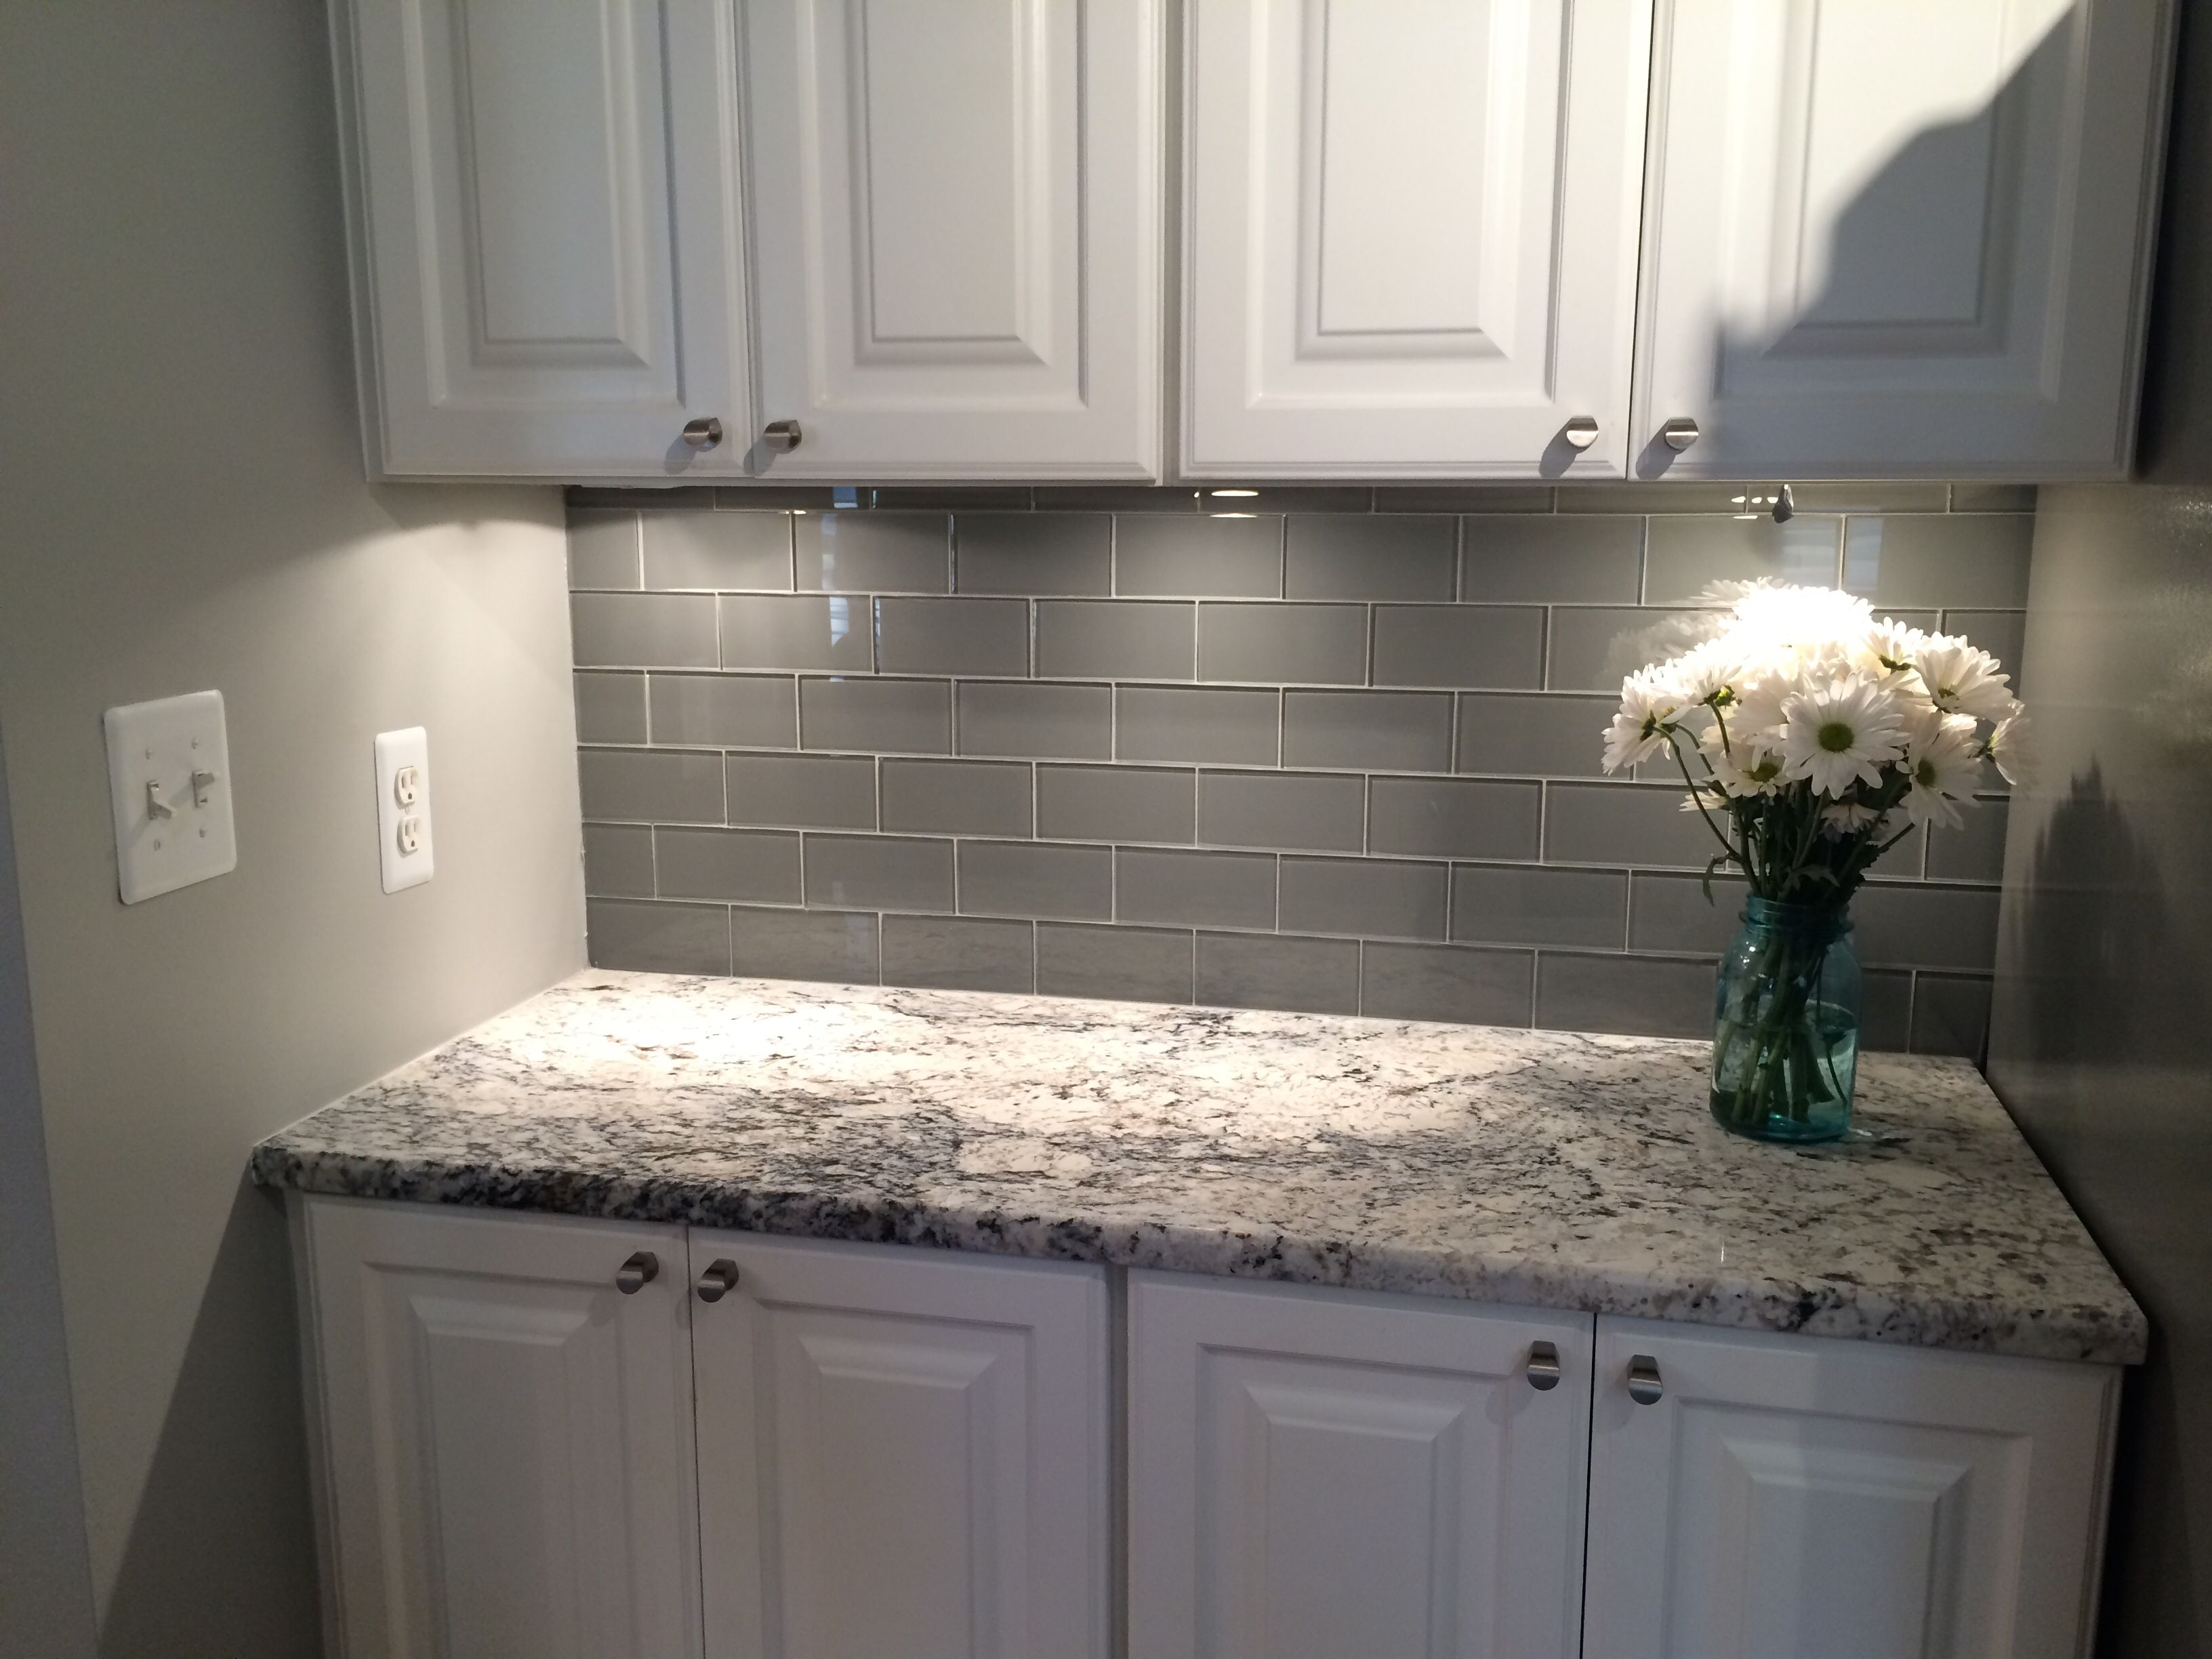 Granite Countertops Kitchener Waterloo Grey Glass Subway Tile Backsplash And White Cabinet For Small